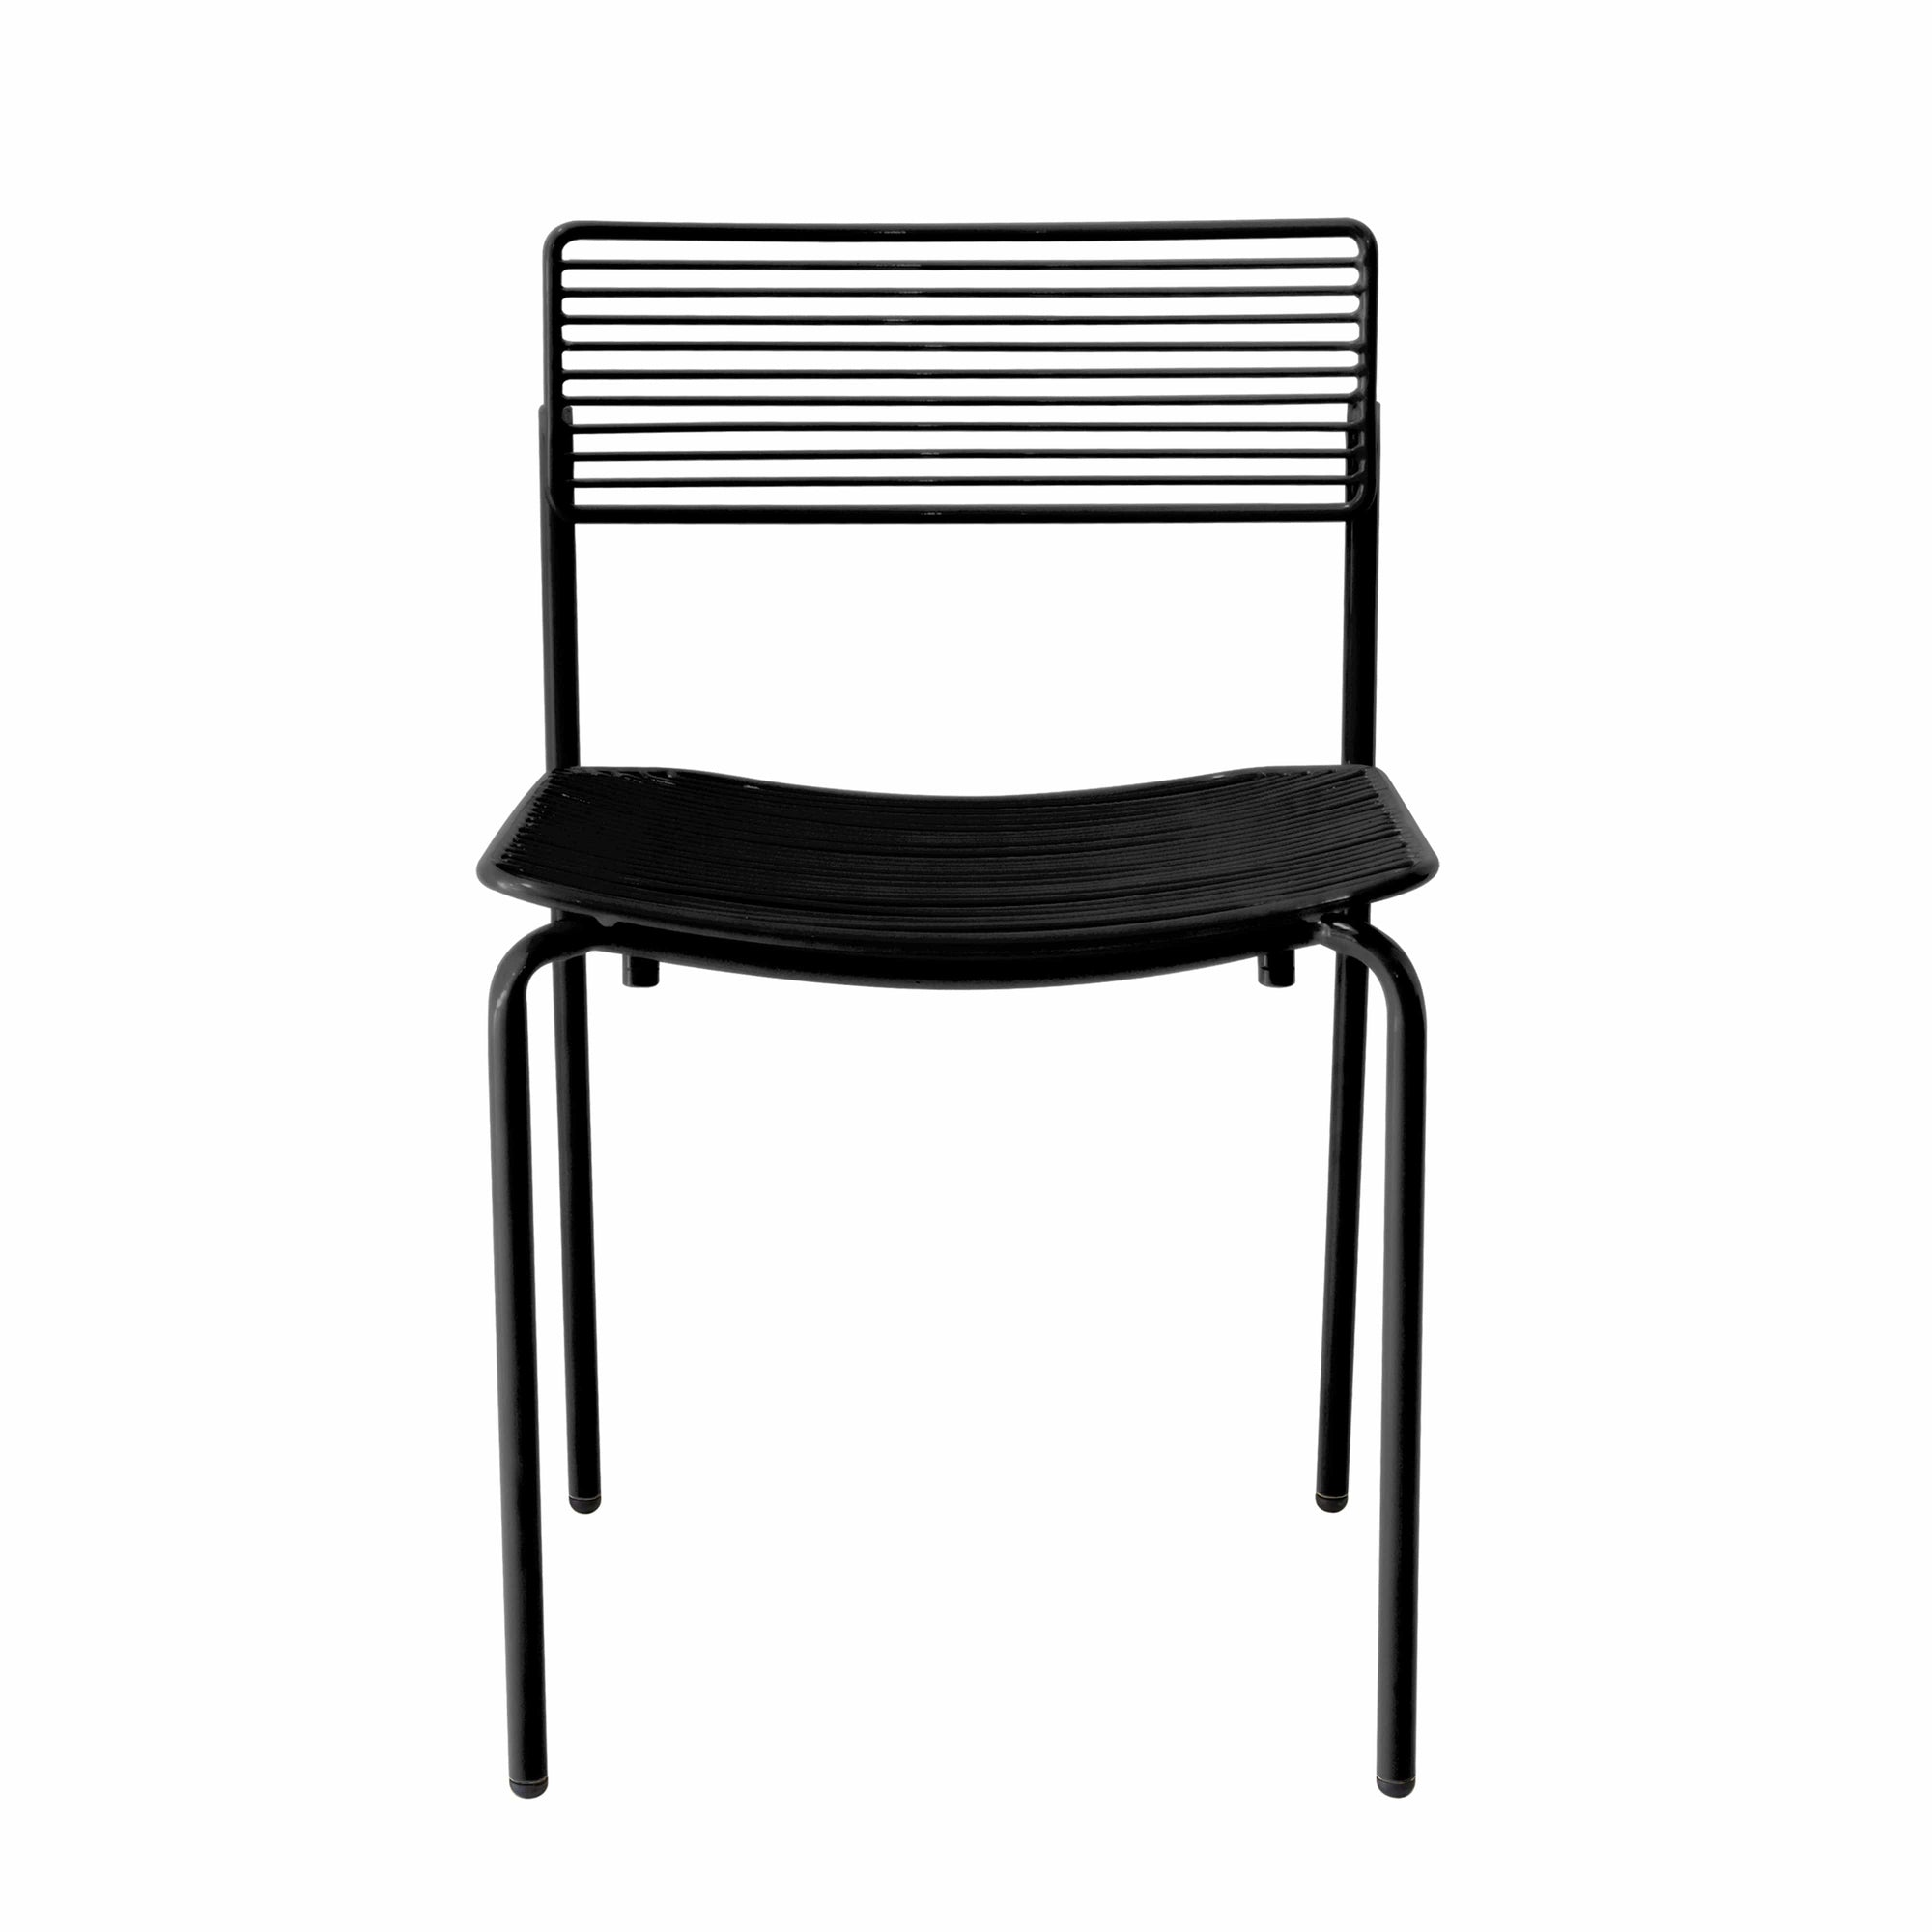 Bend Goods Furniture Black Rachel Dining Chair